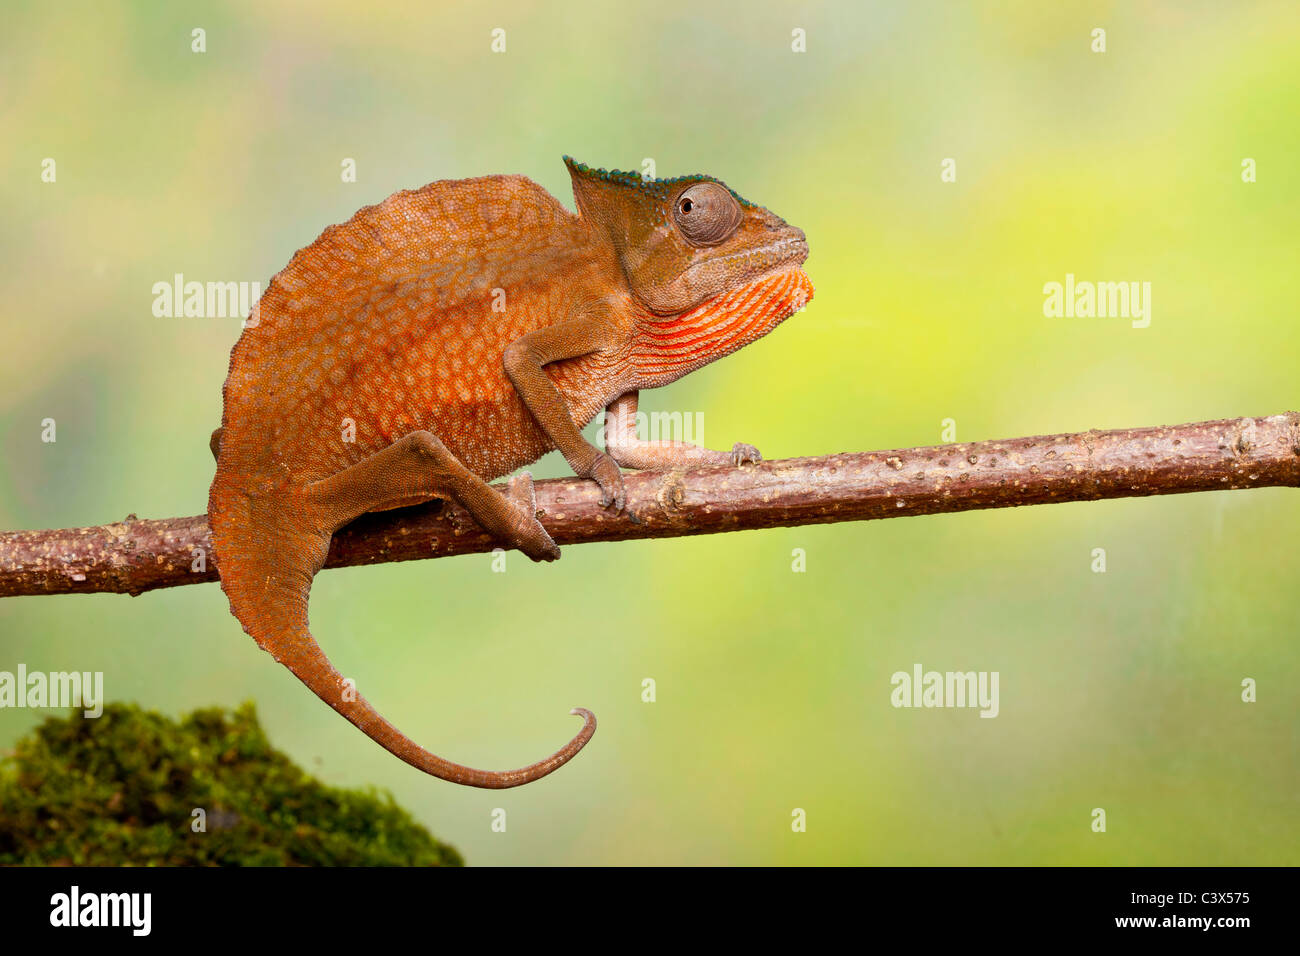 Crested chameleon, Trioceros cristatus,  formerly Chamaeleo cristatus, male, West Africa - Stock Image